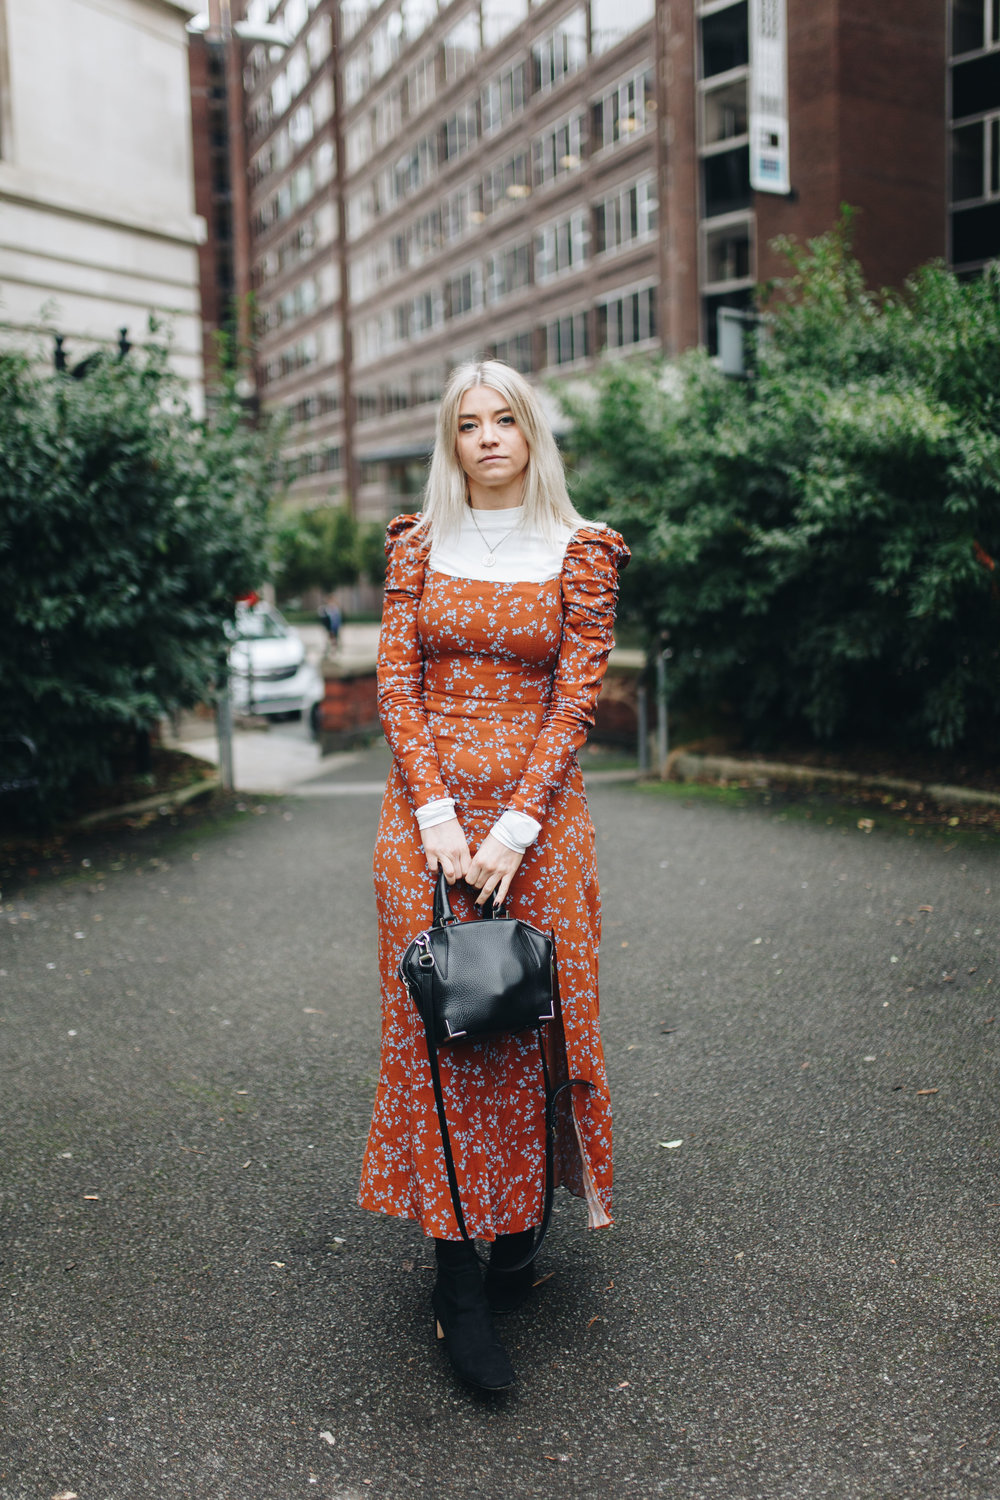 pizza, floral maxi dress, and other stories, manchester fashion, northern magpie, joey taylor 6